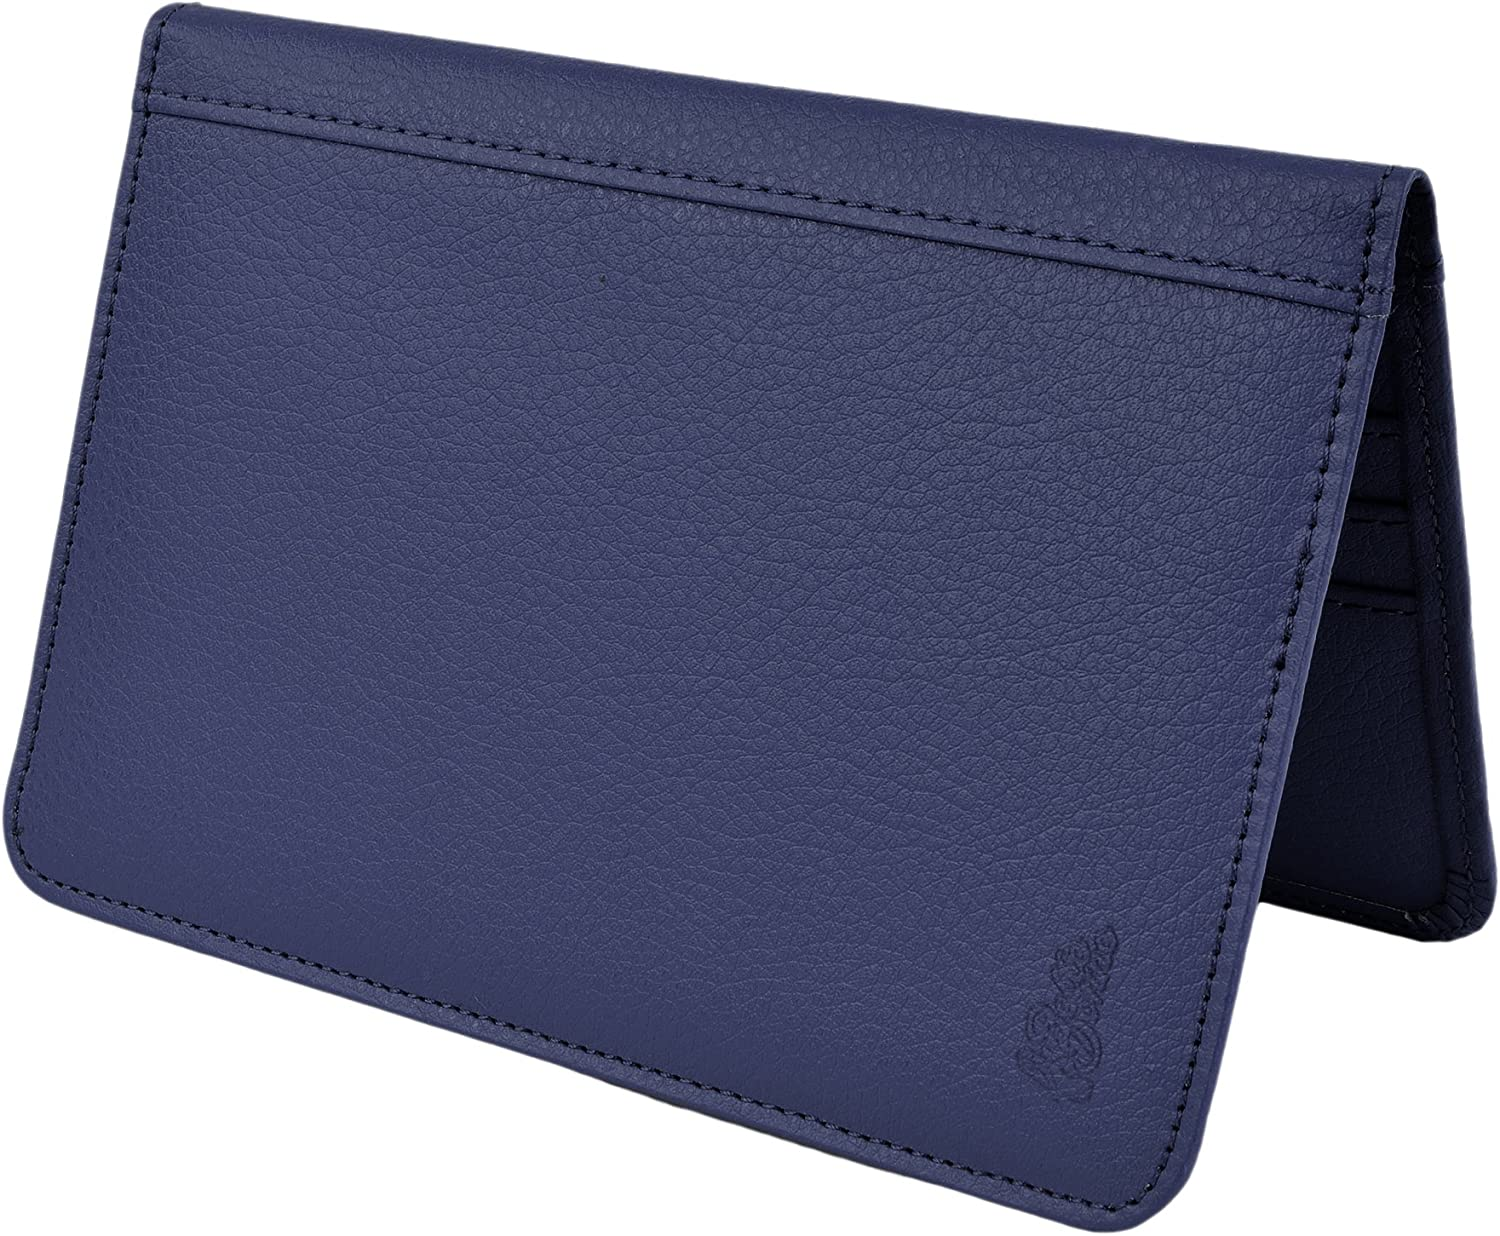 Belle Donne RFID Blocking Passport Cover PU Leather Travel Wallet Blue